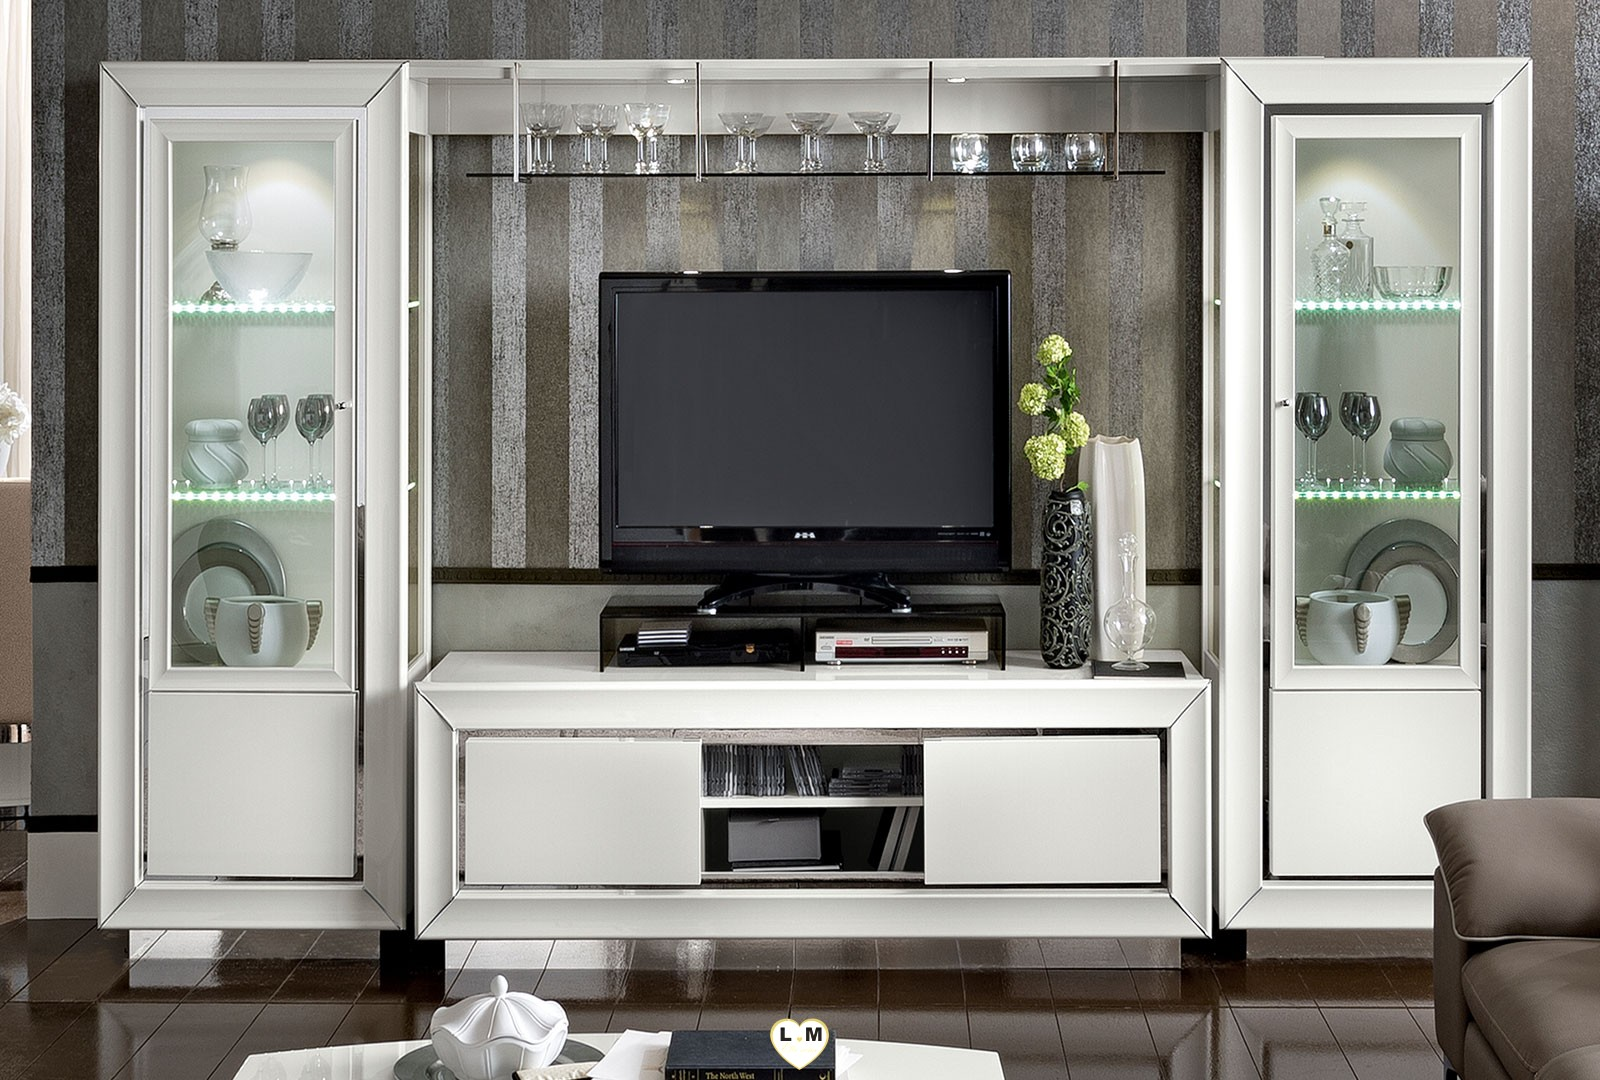 maximus laque blanc brillant sejour salle a manger contemporain la composition meuble tv avec. Black Bedroom Furniture Sets. Home Design Ideas